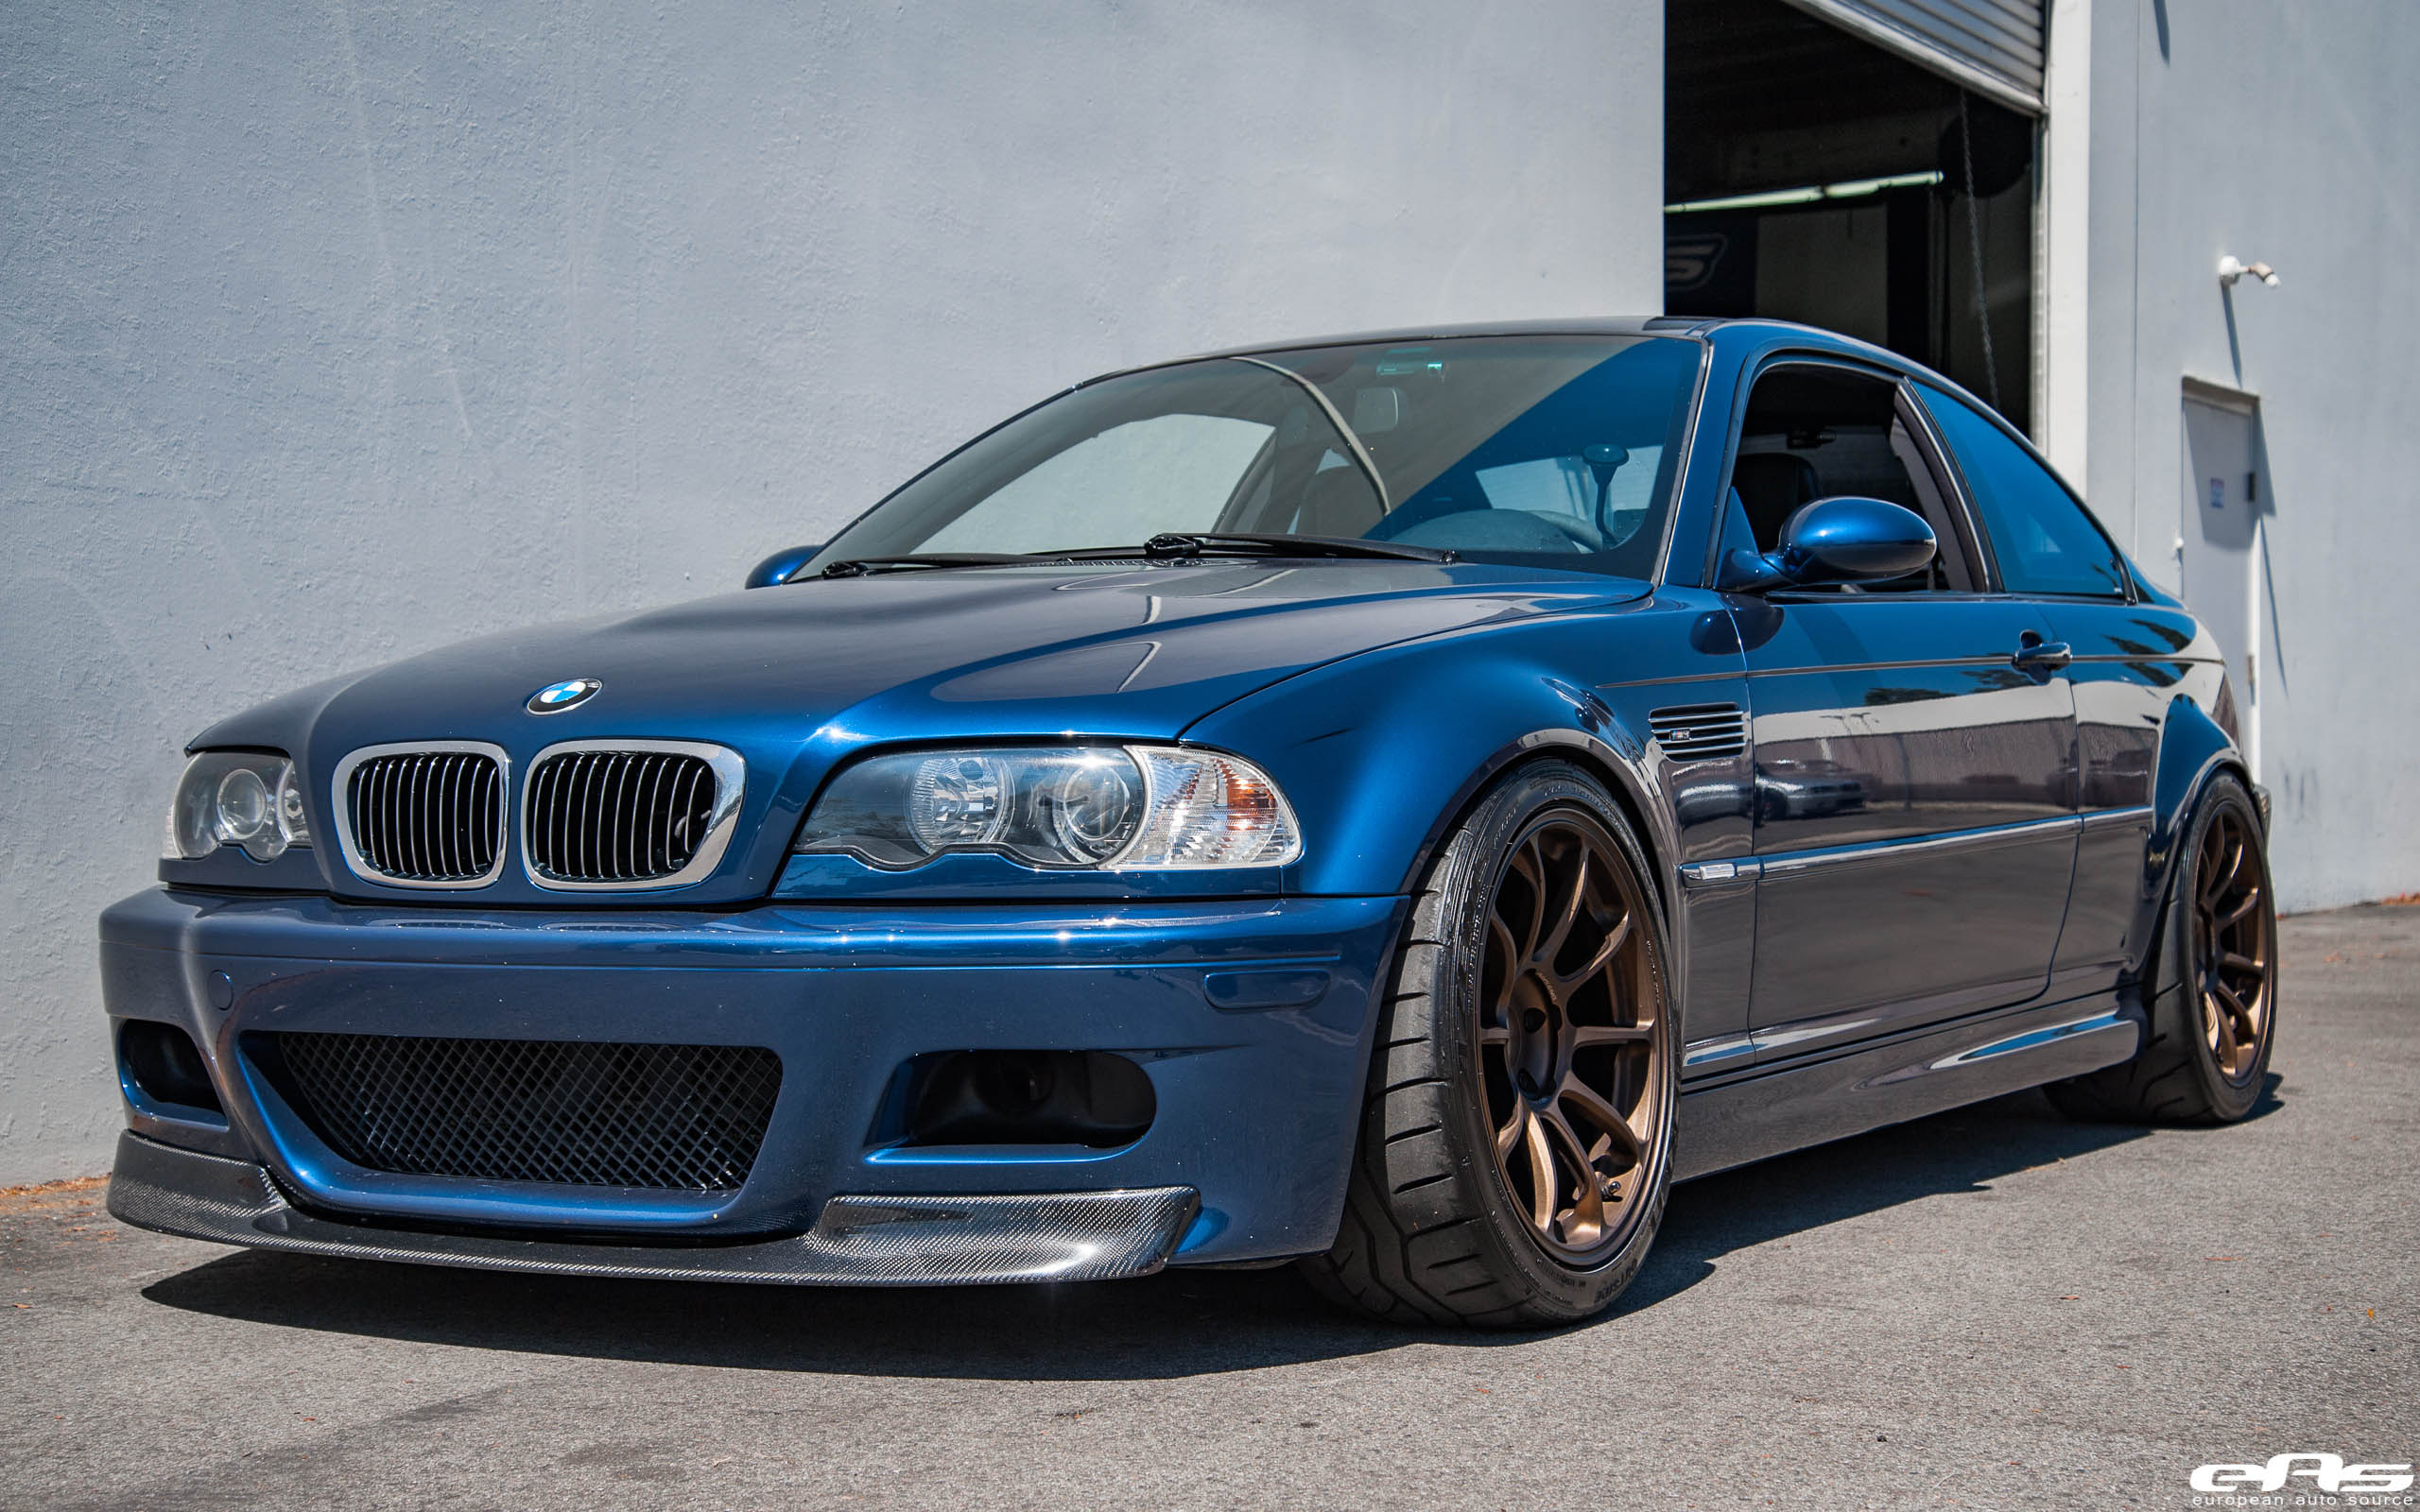 Bmw E46 M3 Mystic Blue >> Mystic Blue E46 M3 - Recaro Sportster, Volk Racing ZE40 | BMW Performance Parts & Services